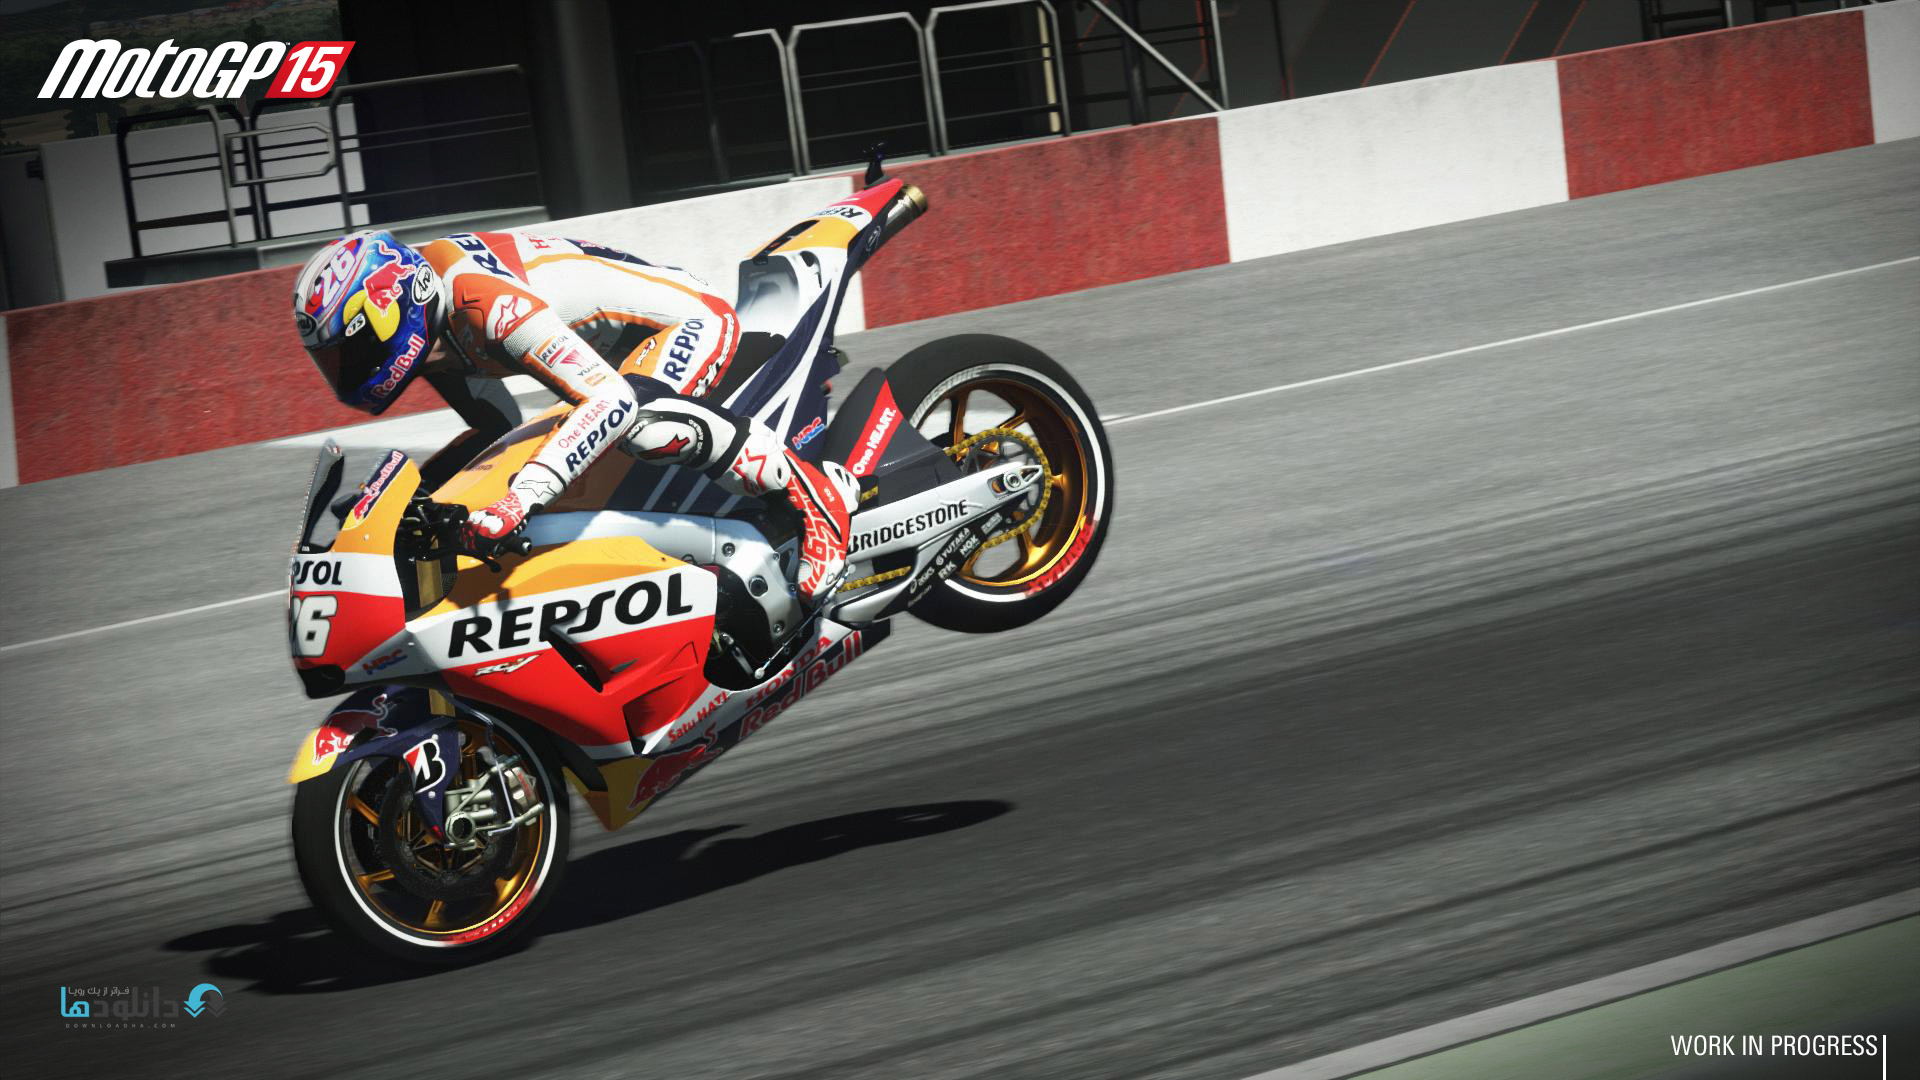 http://img5.downloadha.com/hosein/Game/June%202015/24/MotoGP15-screenshots-04-large.jpg